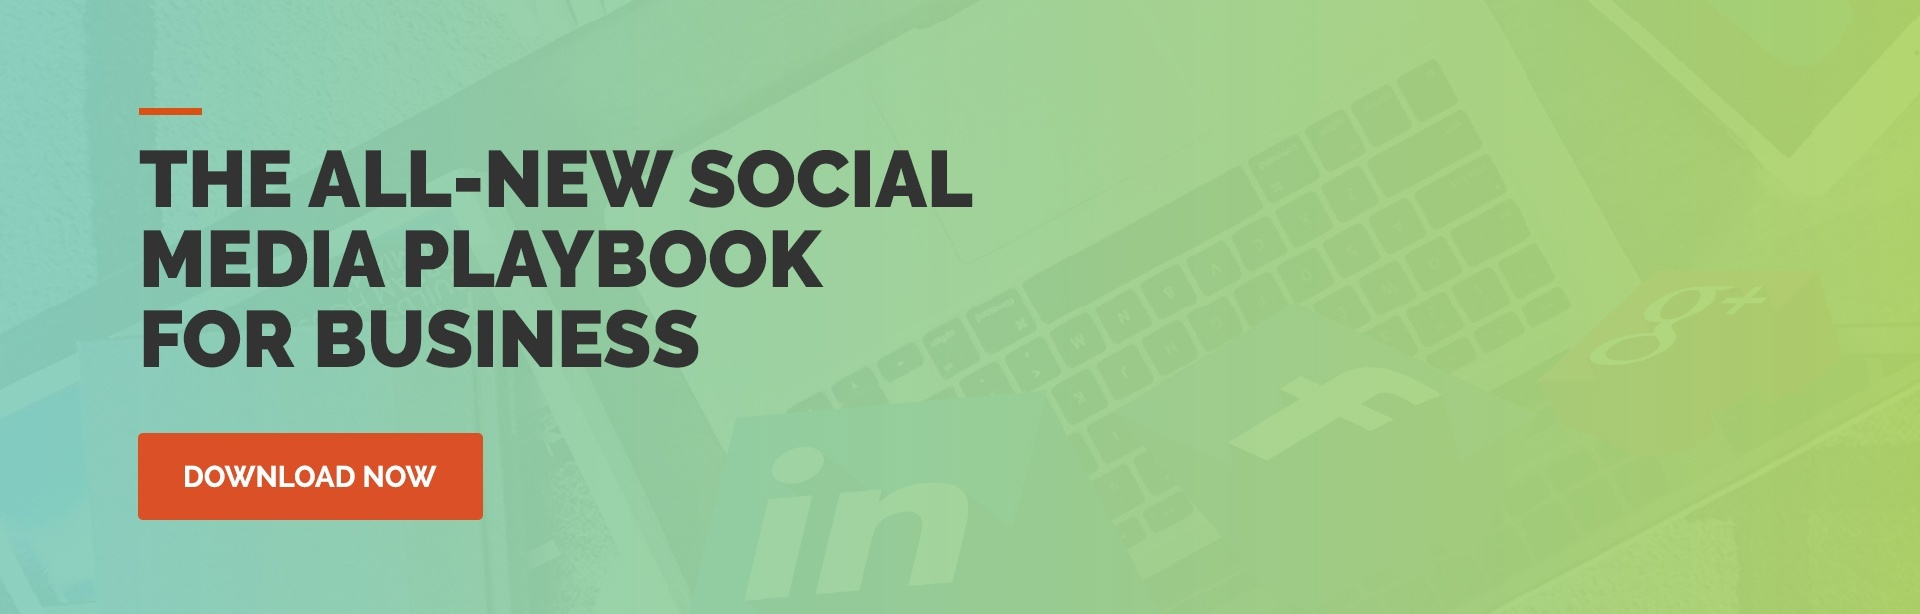 Download the All New Social Media Playbook for Business